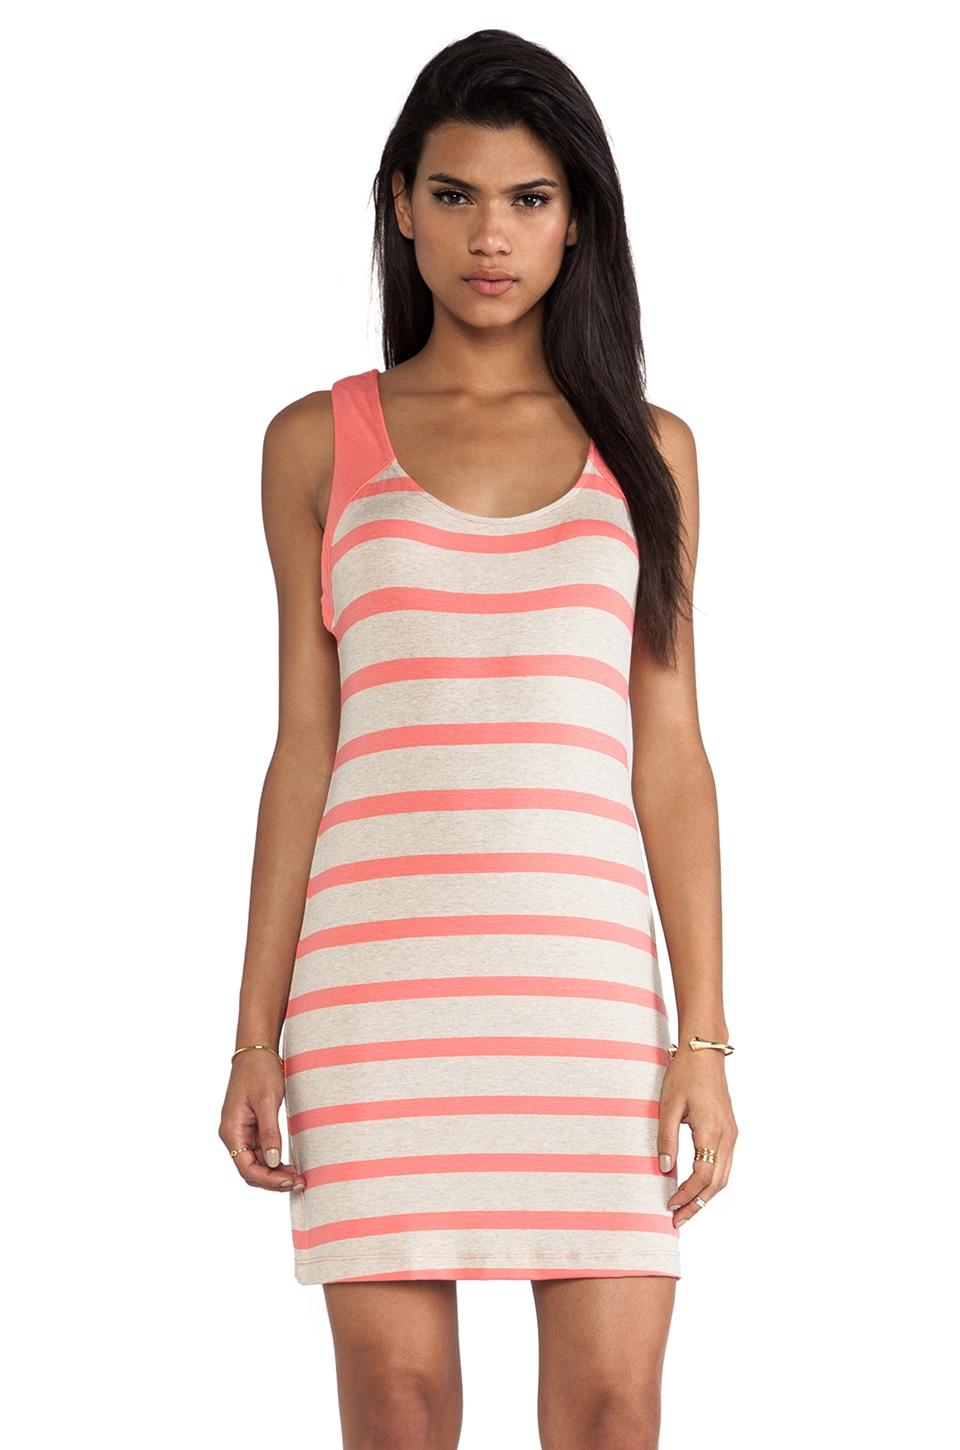 LA Made Stripe Racerback Tank Dress in Grapefruit